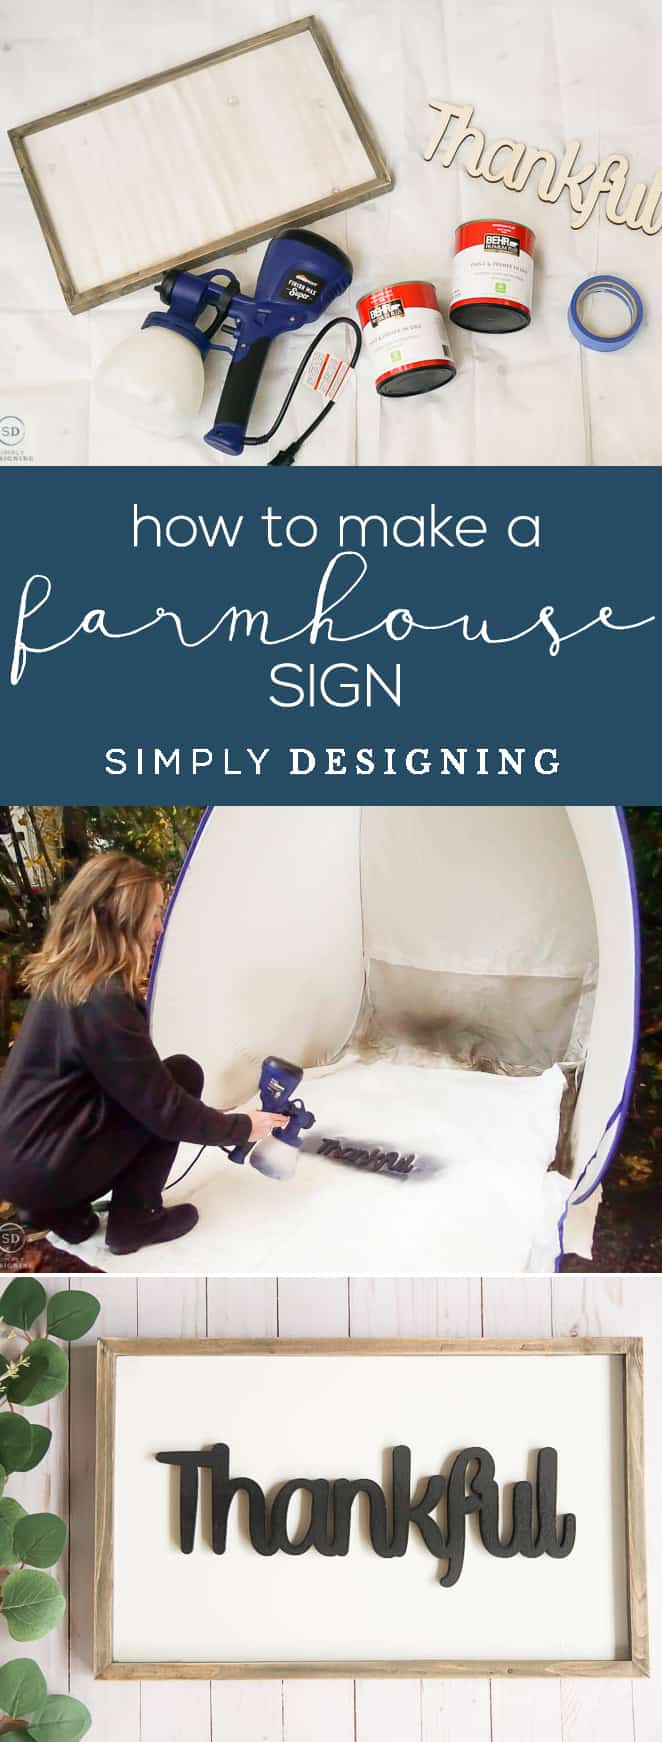 How to make a farmhouse sign - Save your time and money and make your own farmhouse sign instead of buying it with these tips for how to make a farmhouse sign